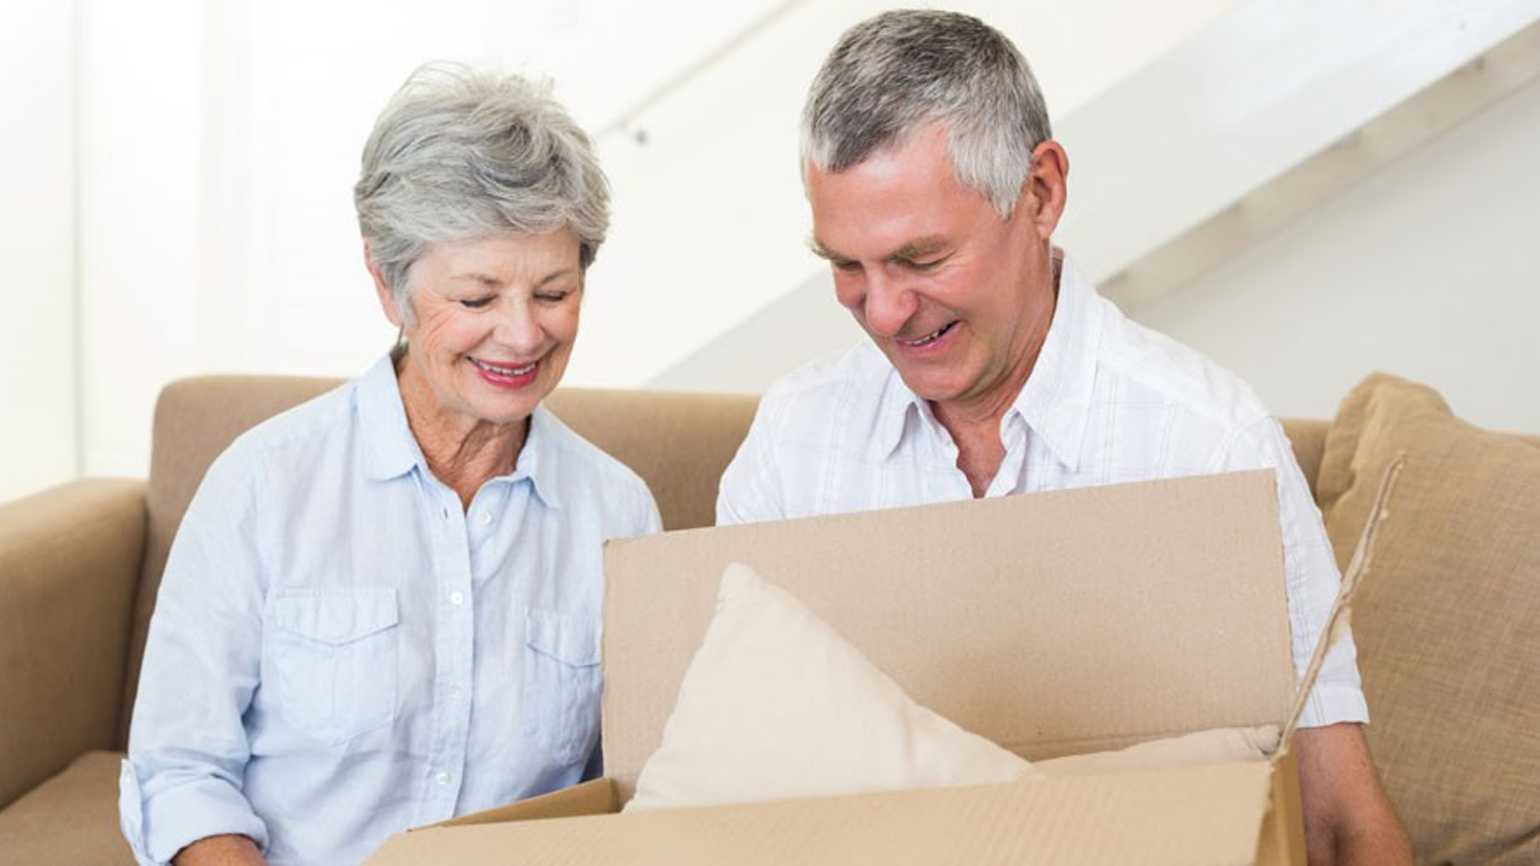 A older couple packs their belongings in moving boxes.